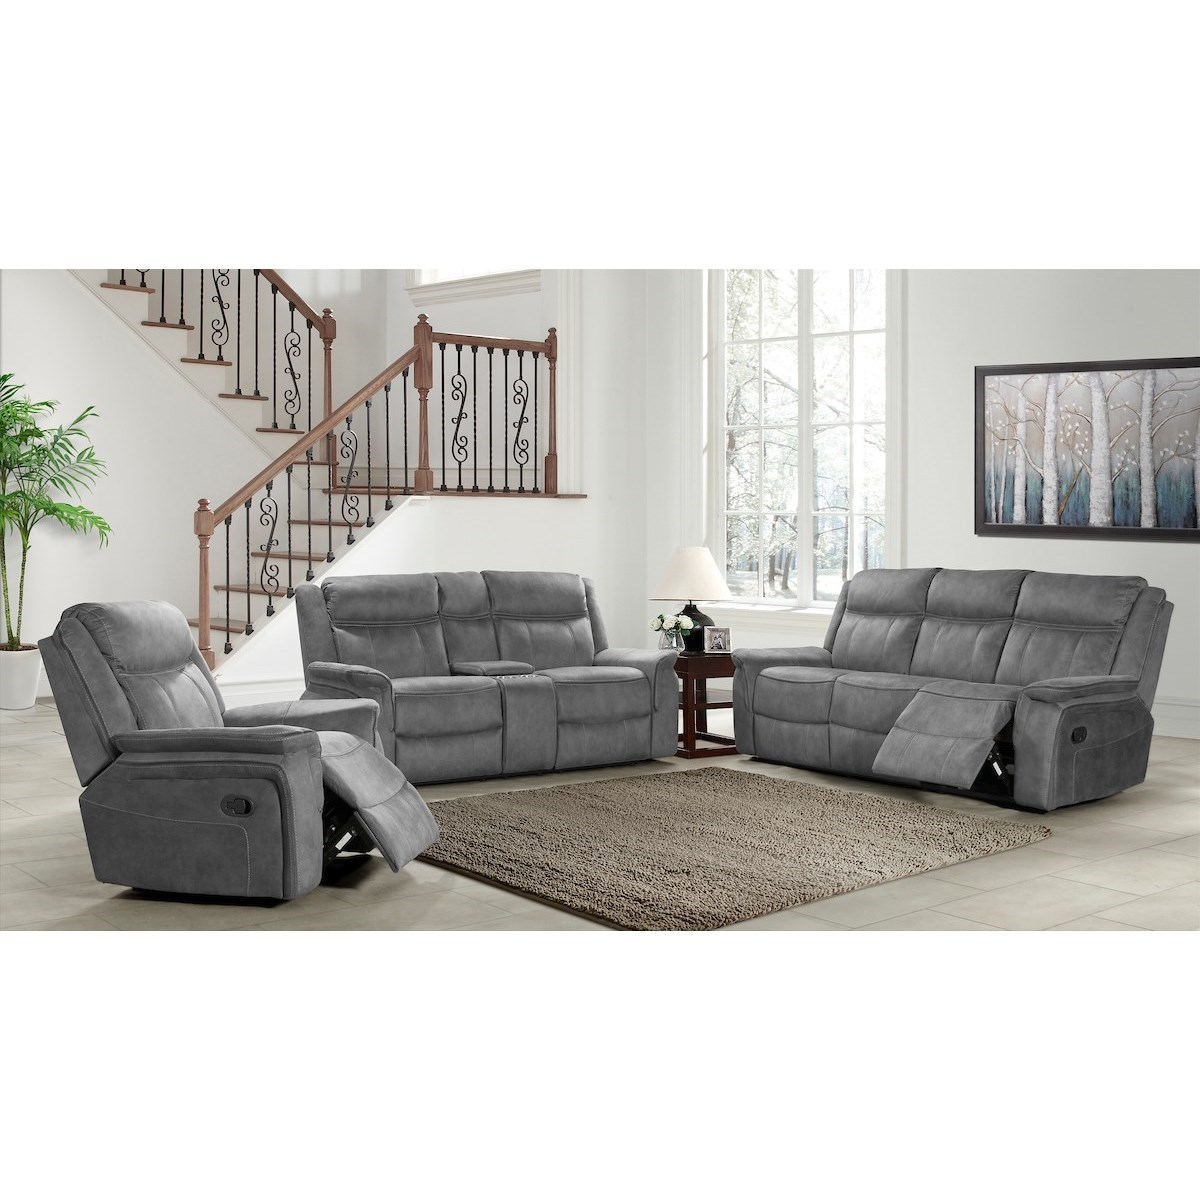 Kisner-US Reclining Living Room Group by Klaussner International at Northeast Factory Direct